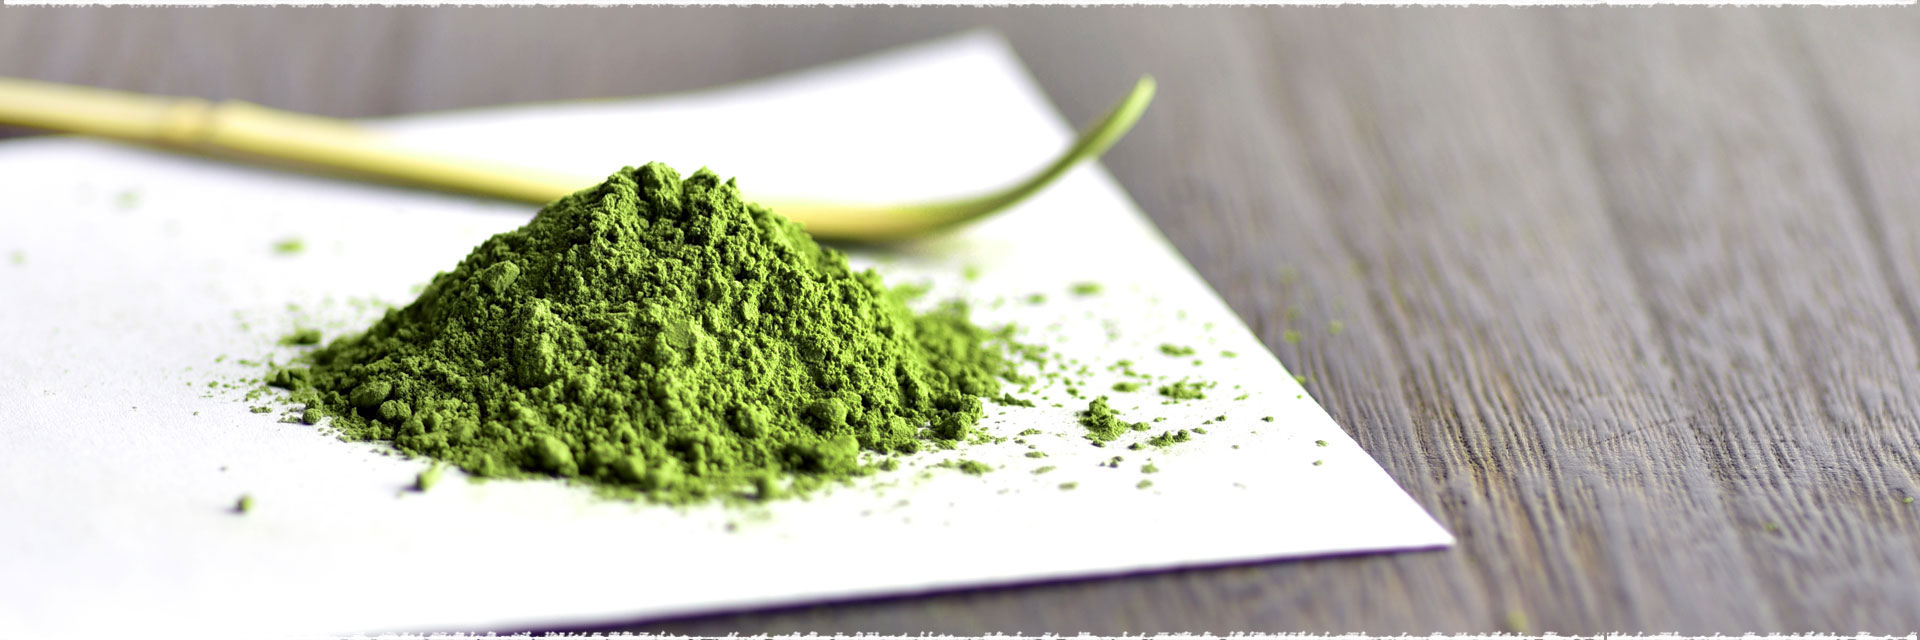 Health Benefits and Usages of Matcha Green Tea